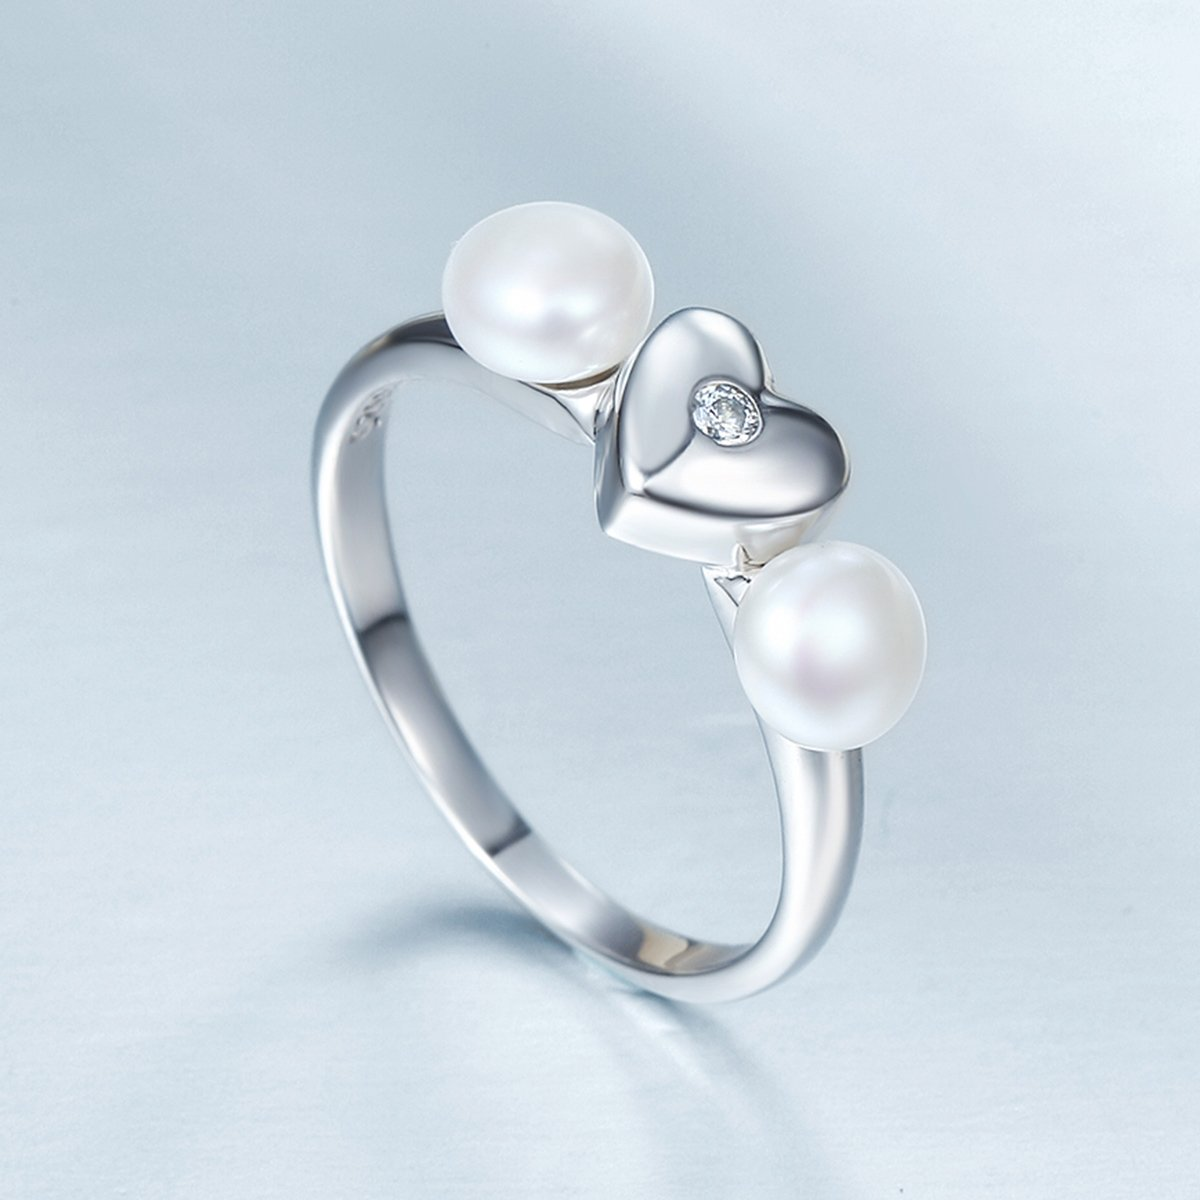 Everbling Sweet Heart with Freshwater Cultured Pearl 925 Sterling Silver Ring Clear CZ